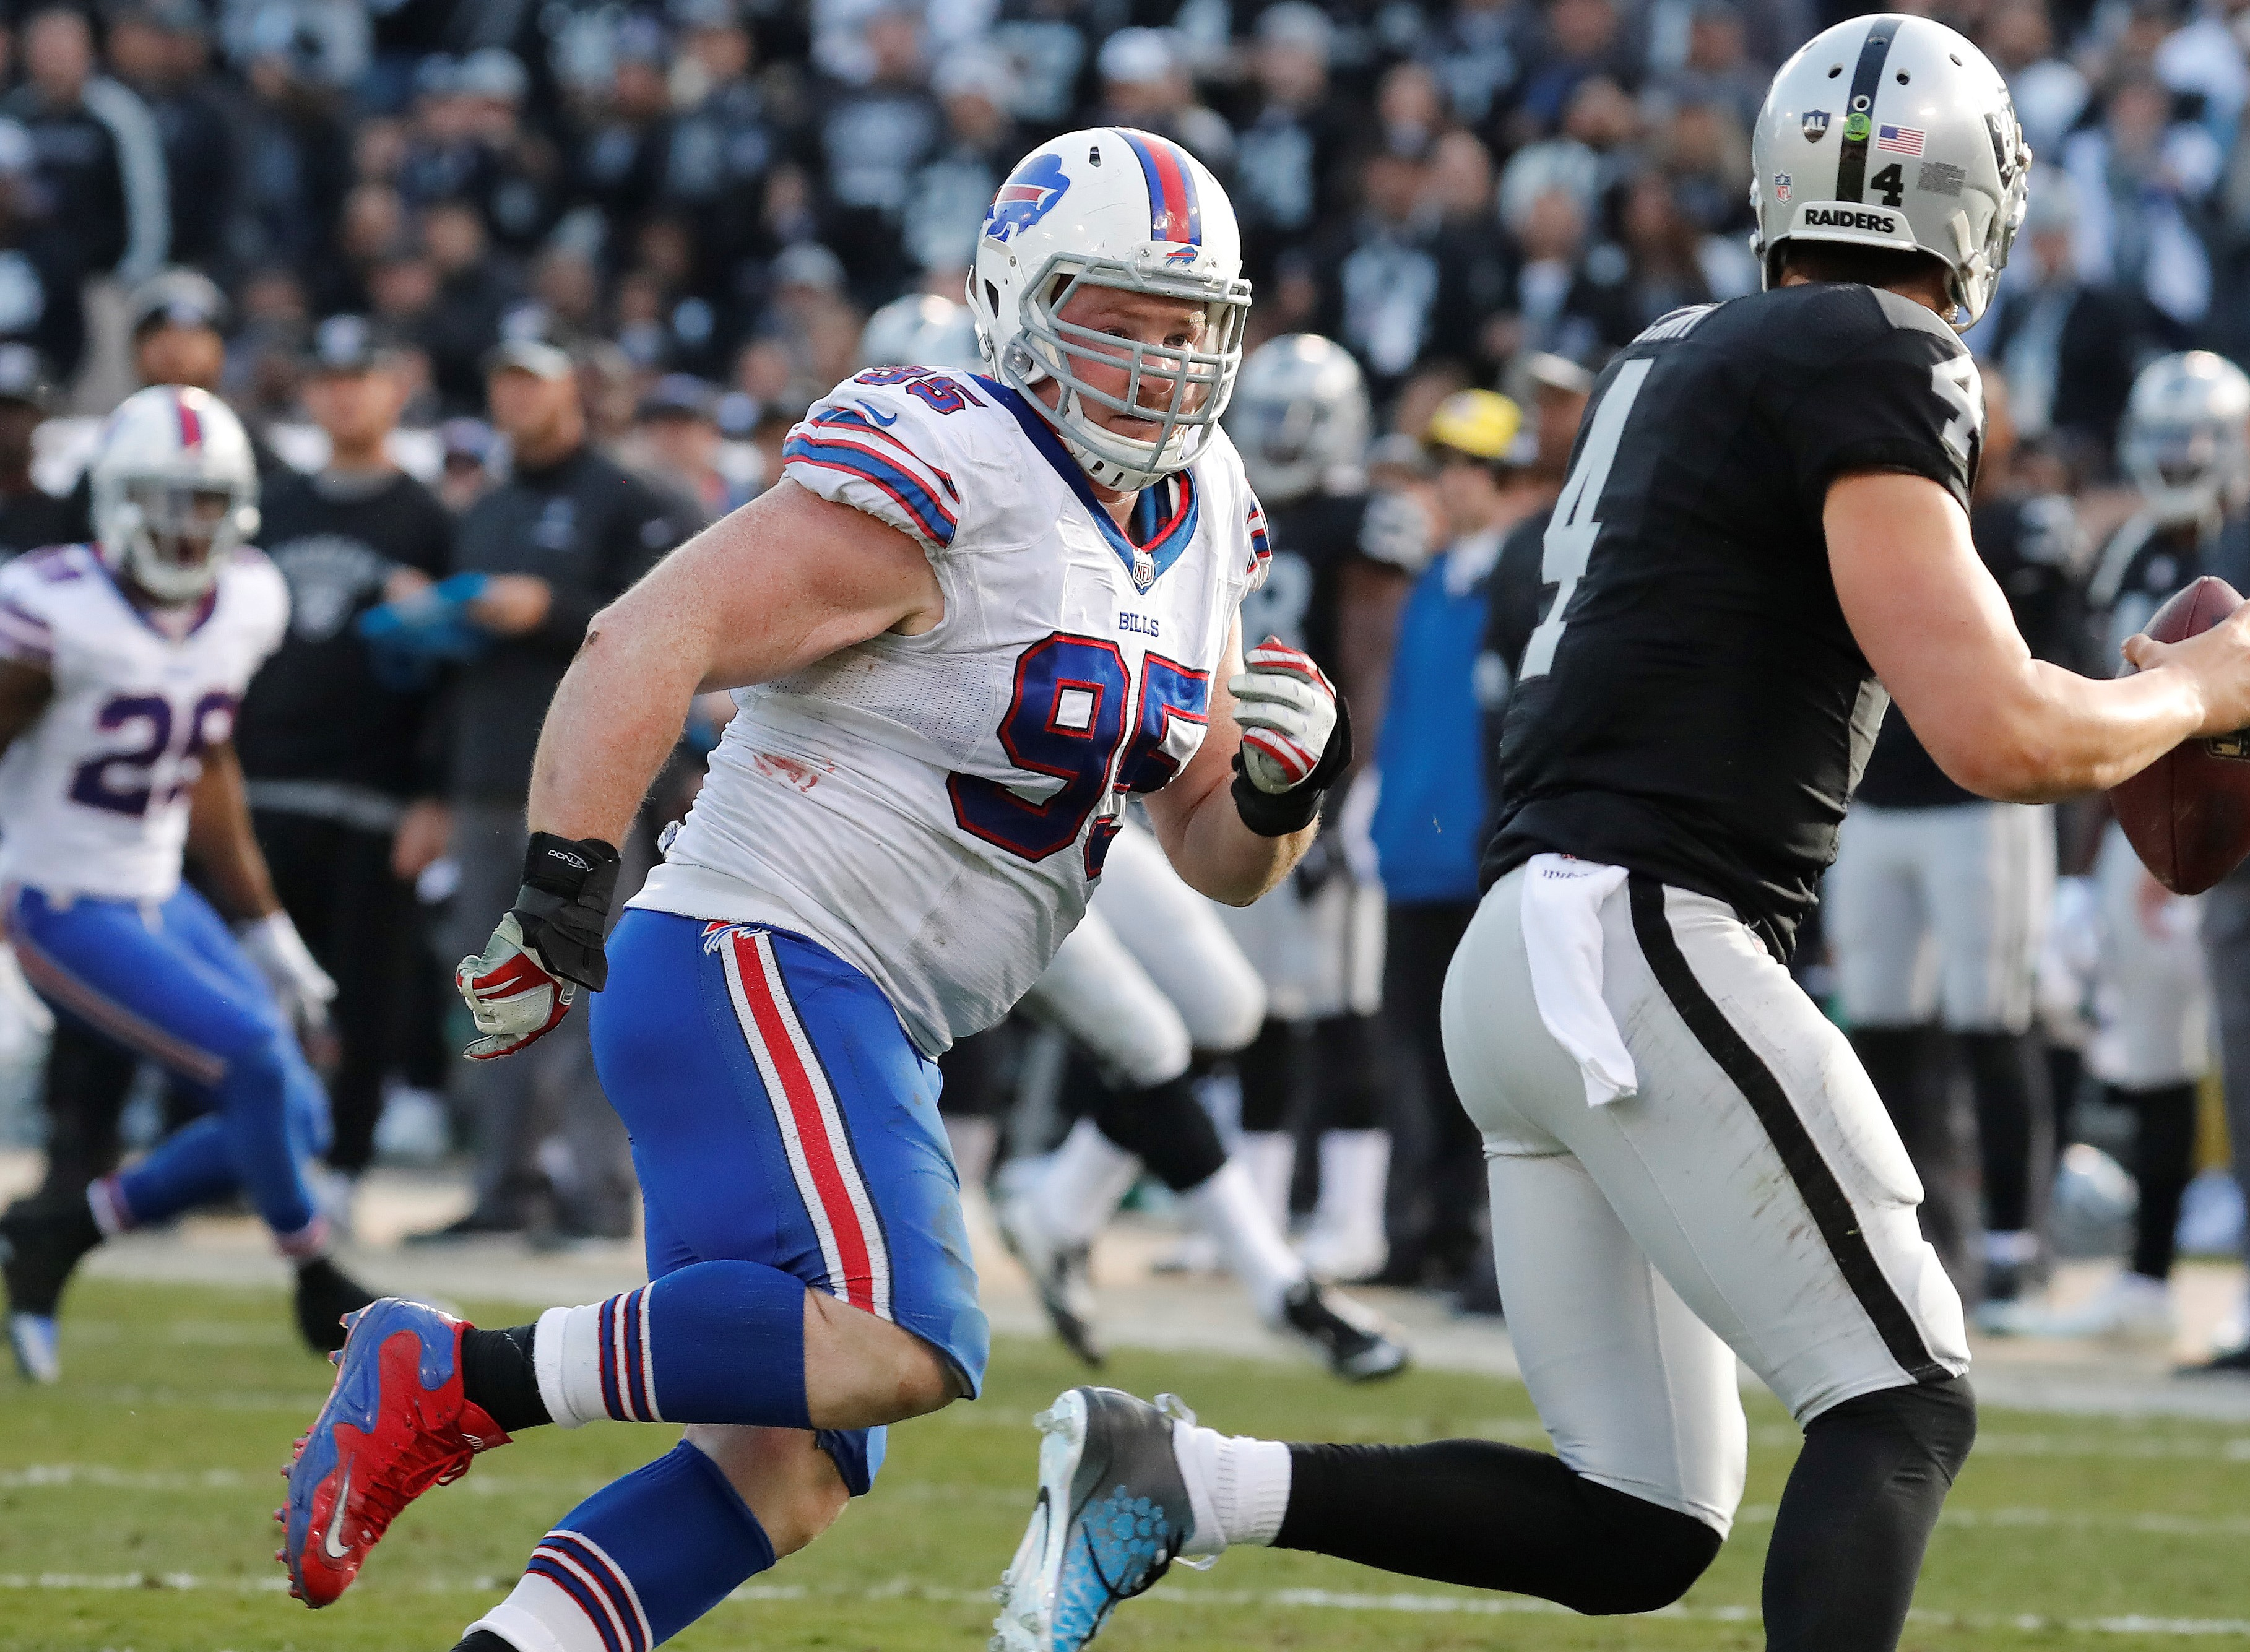 Kyle Williams and the Bills will be looking for revenge after last year's loss to the Raiders. (Harry Scull Jr./Buffalo News)